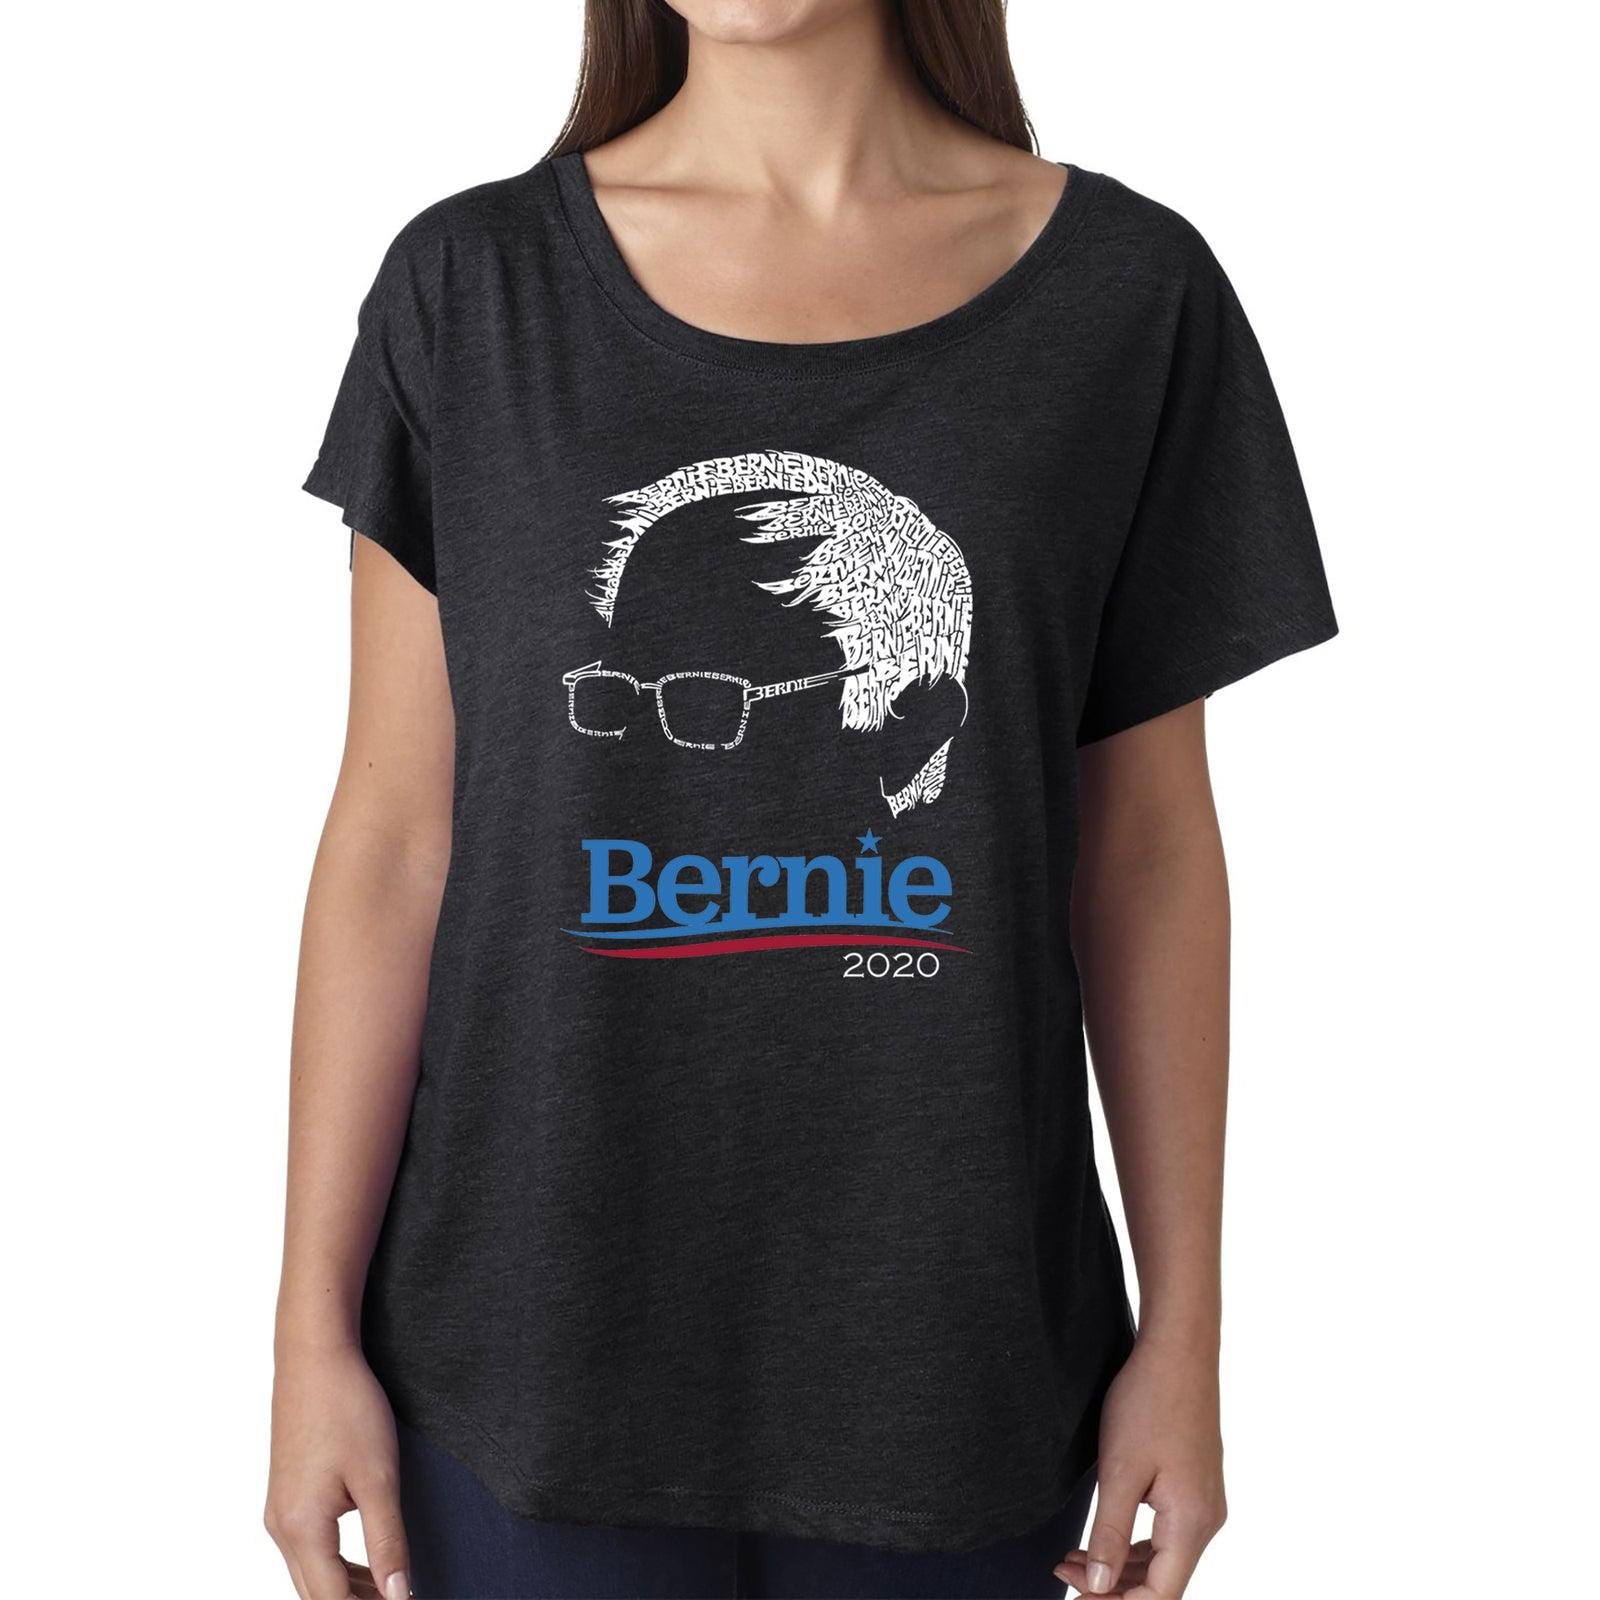 Women's Loose Fit Dolman Cut Word Art Shirt - Bernie Sanders 2020